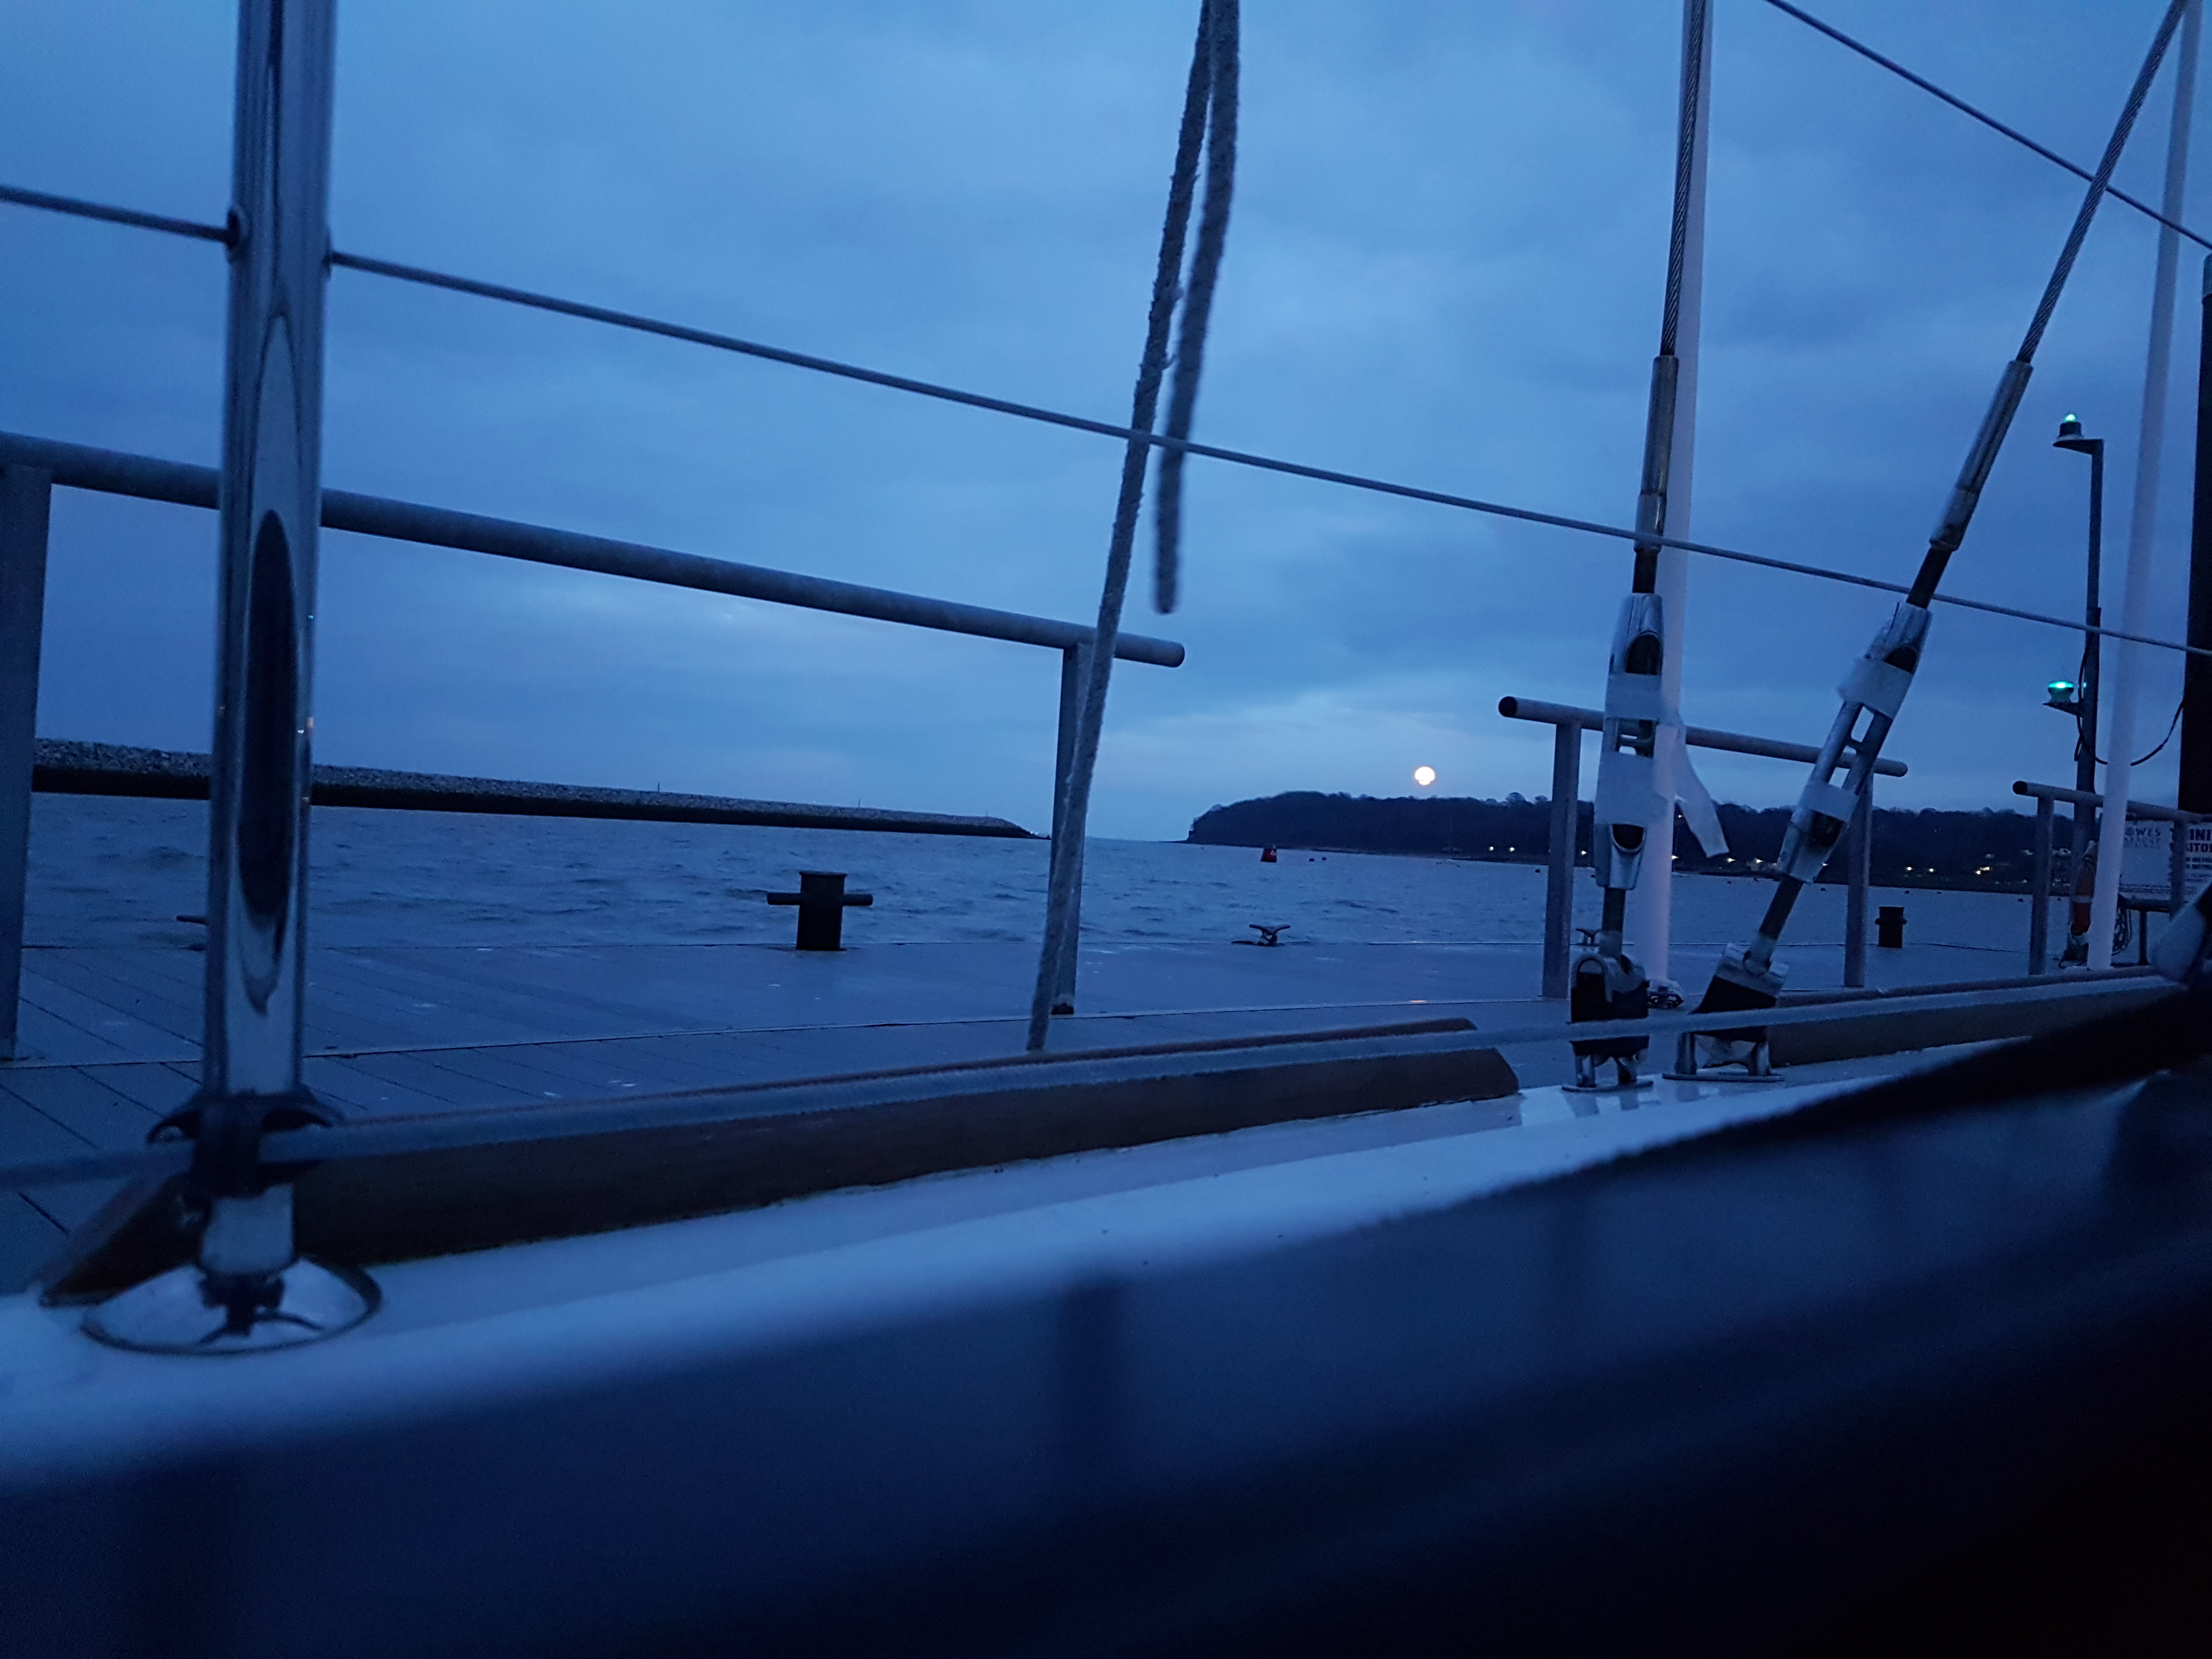 Preparing for a night sail to Hamble